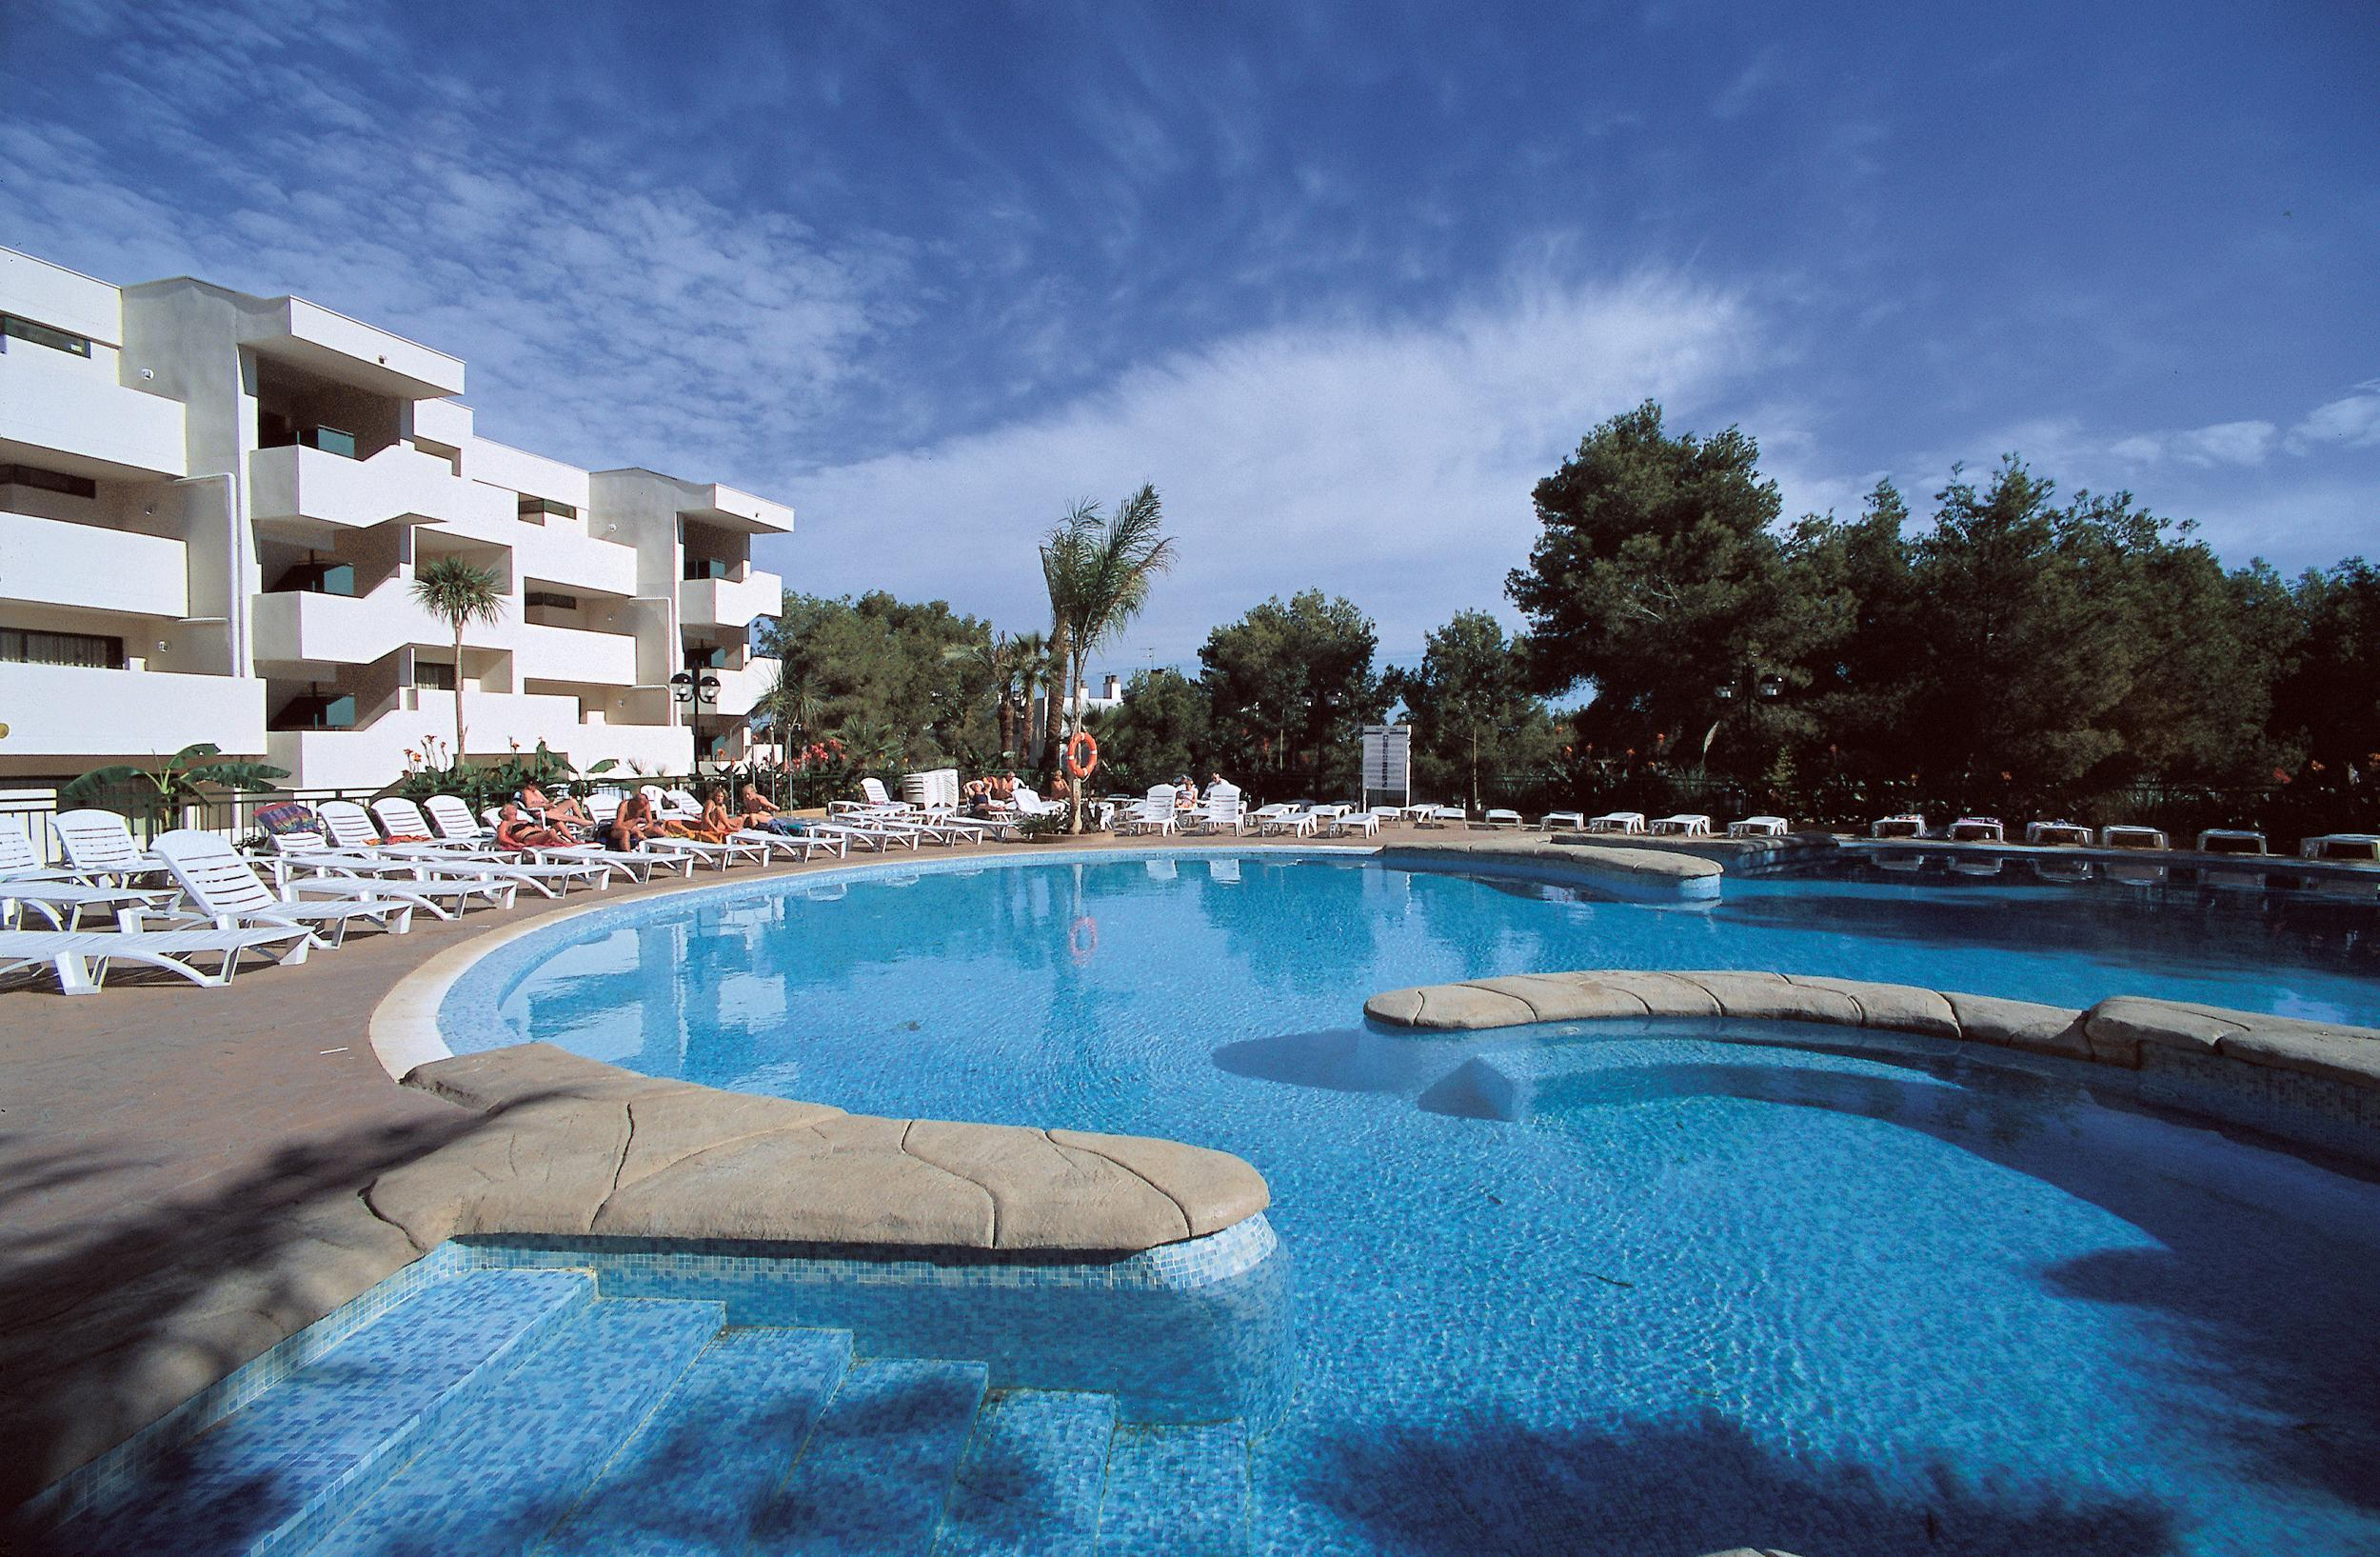 Festival Village Aparthotel in Salou, Costa Dorada, Spain